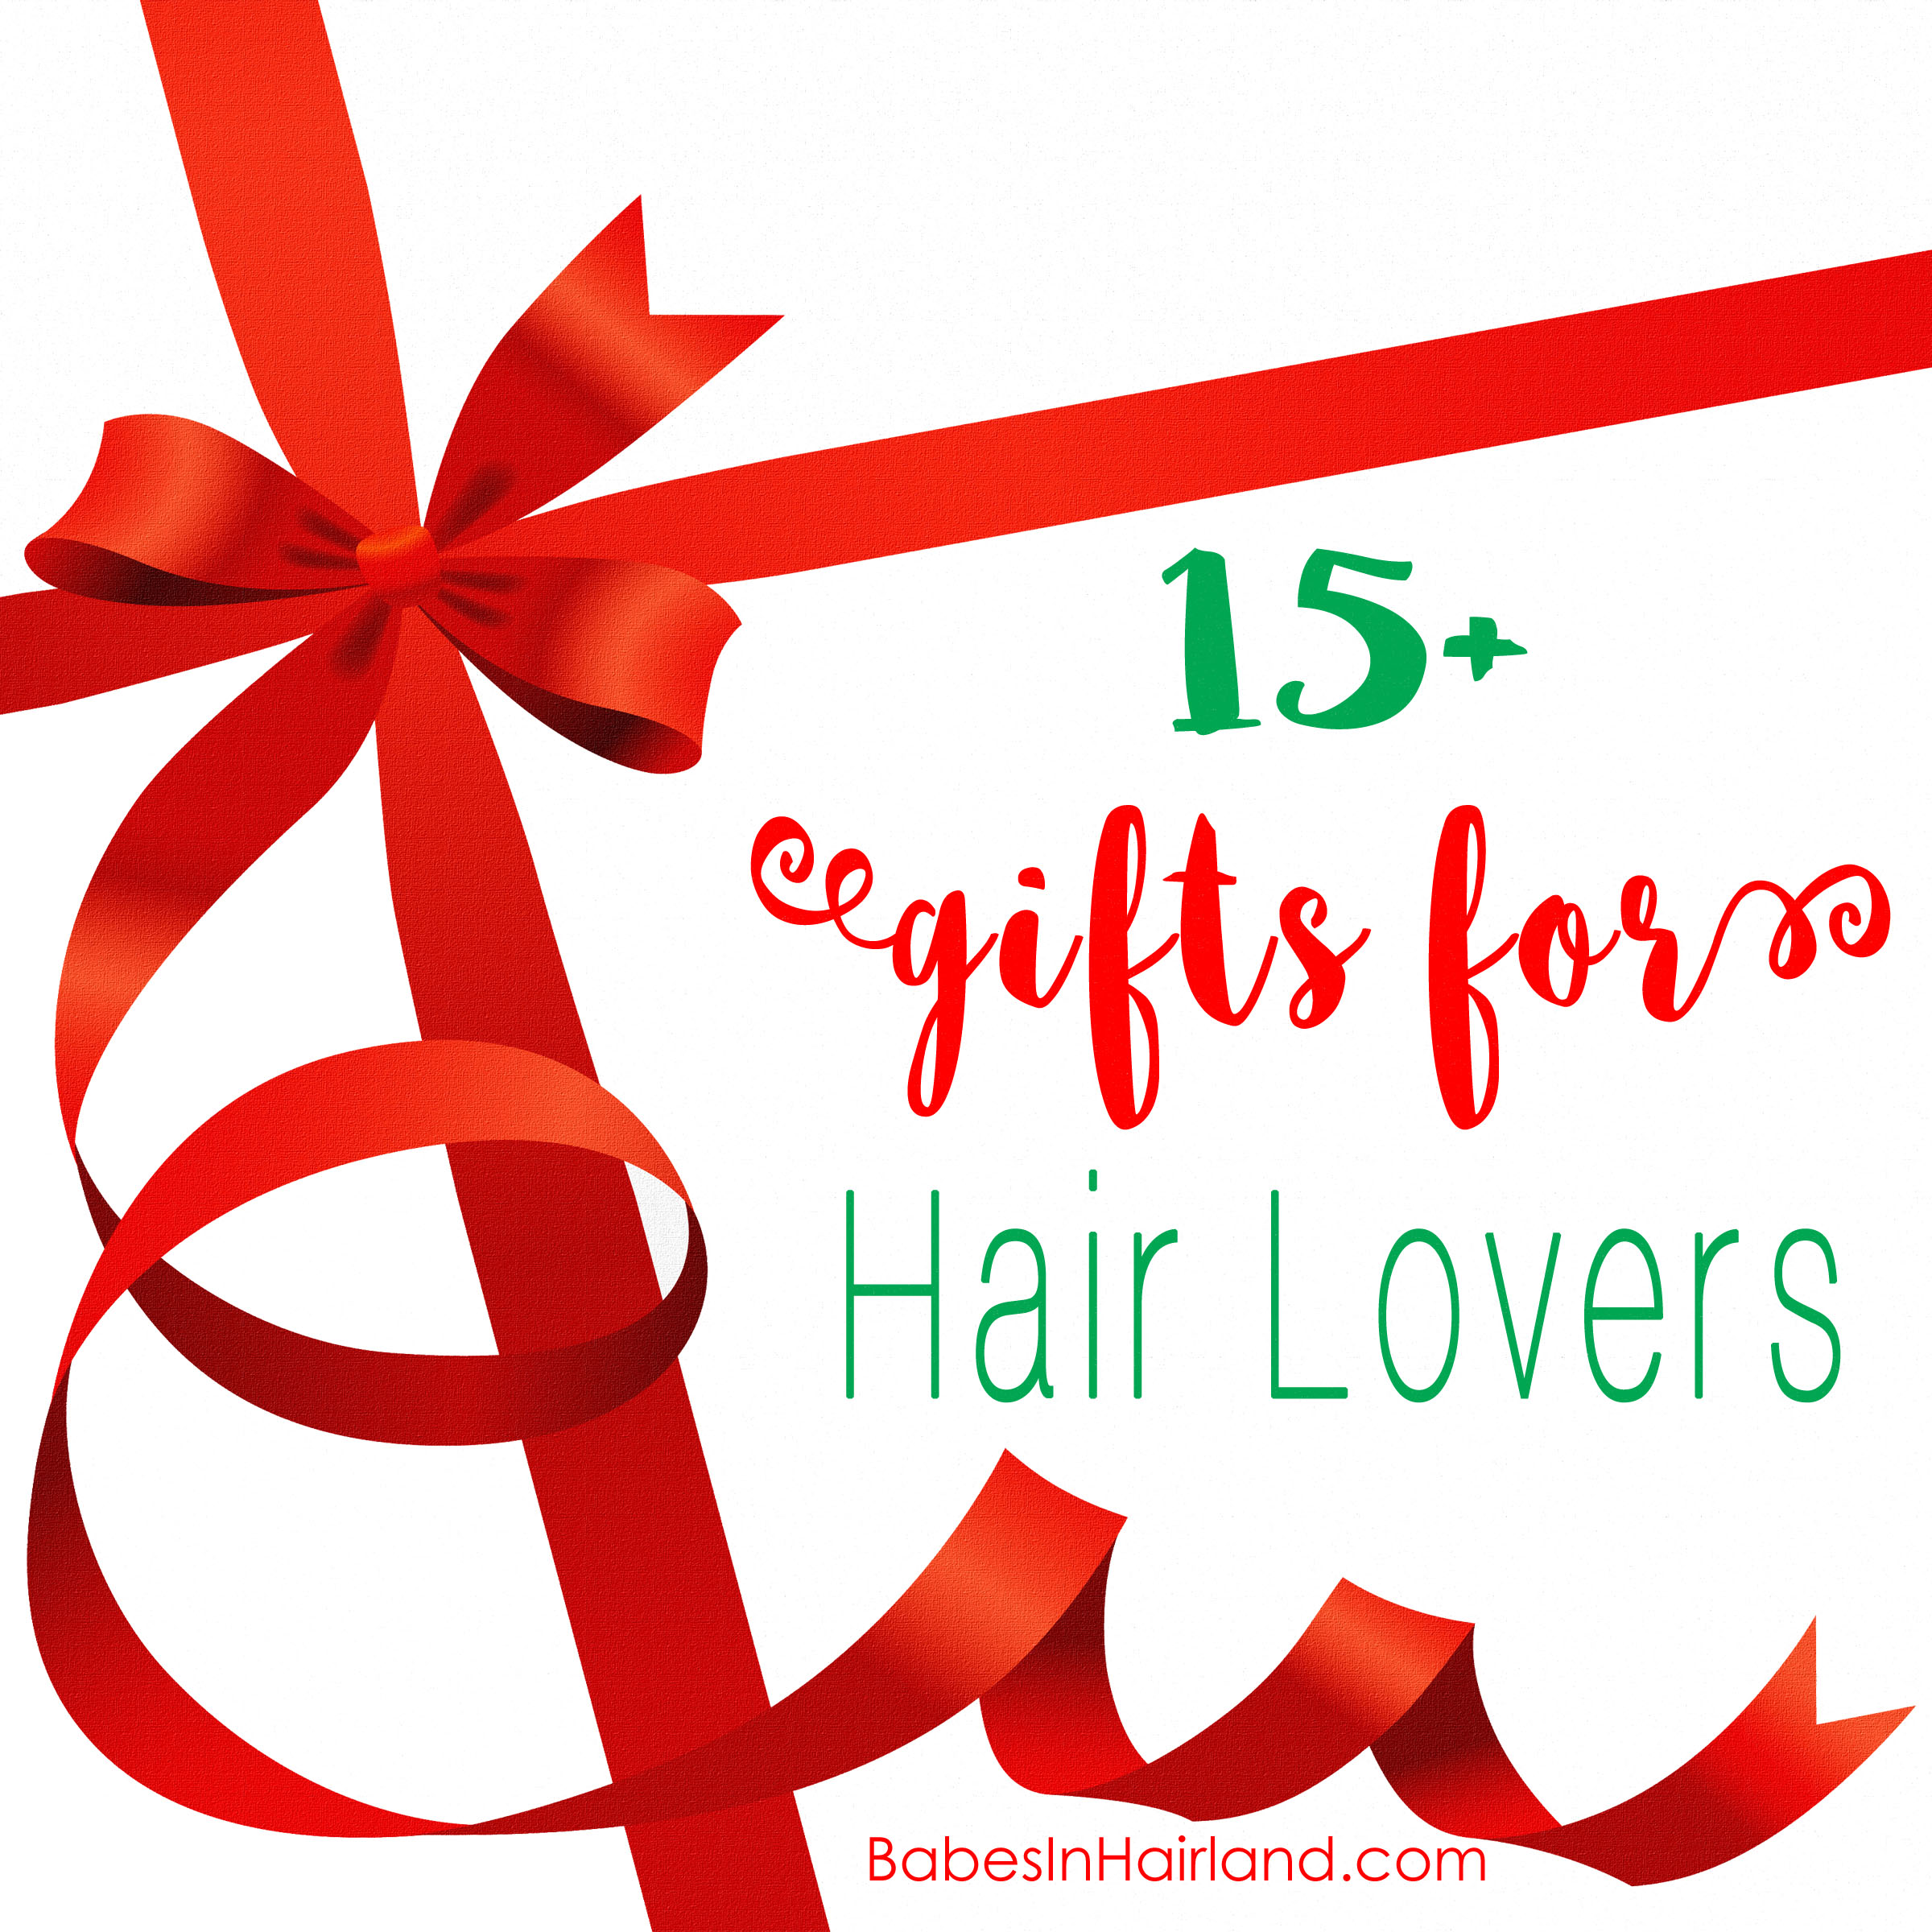 Gifts For Hair Lovers From Babesinhairlandcom #Christmas #Gift #Hairlover #